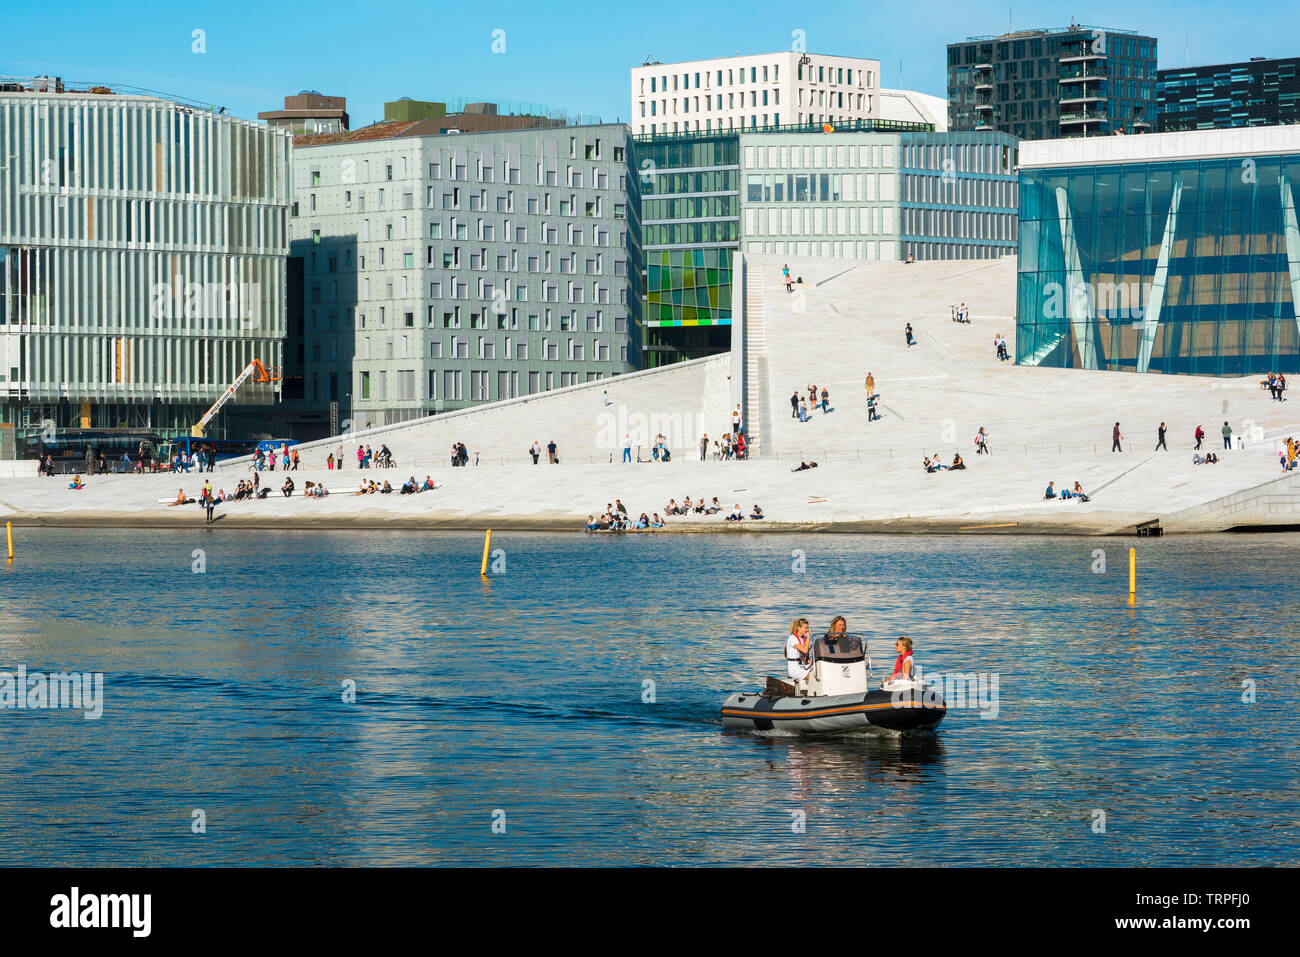 Oslo Norway, view of young people sailing a boat past the Oslo Opera House and the city's Barcode district on a summer afternoon, Norway. Stock Photo